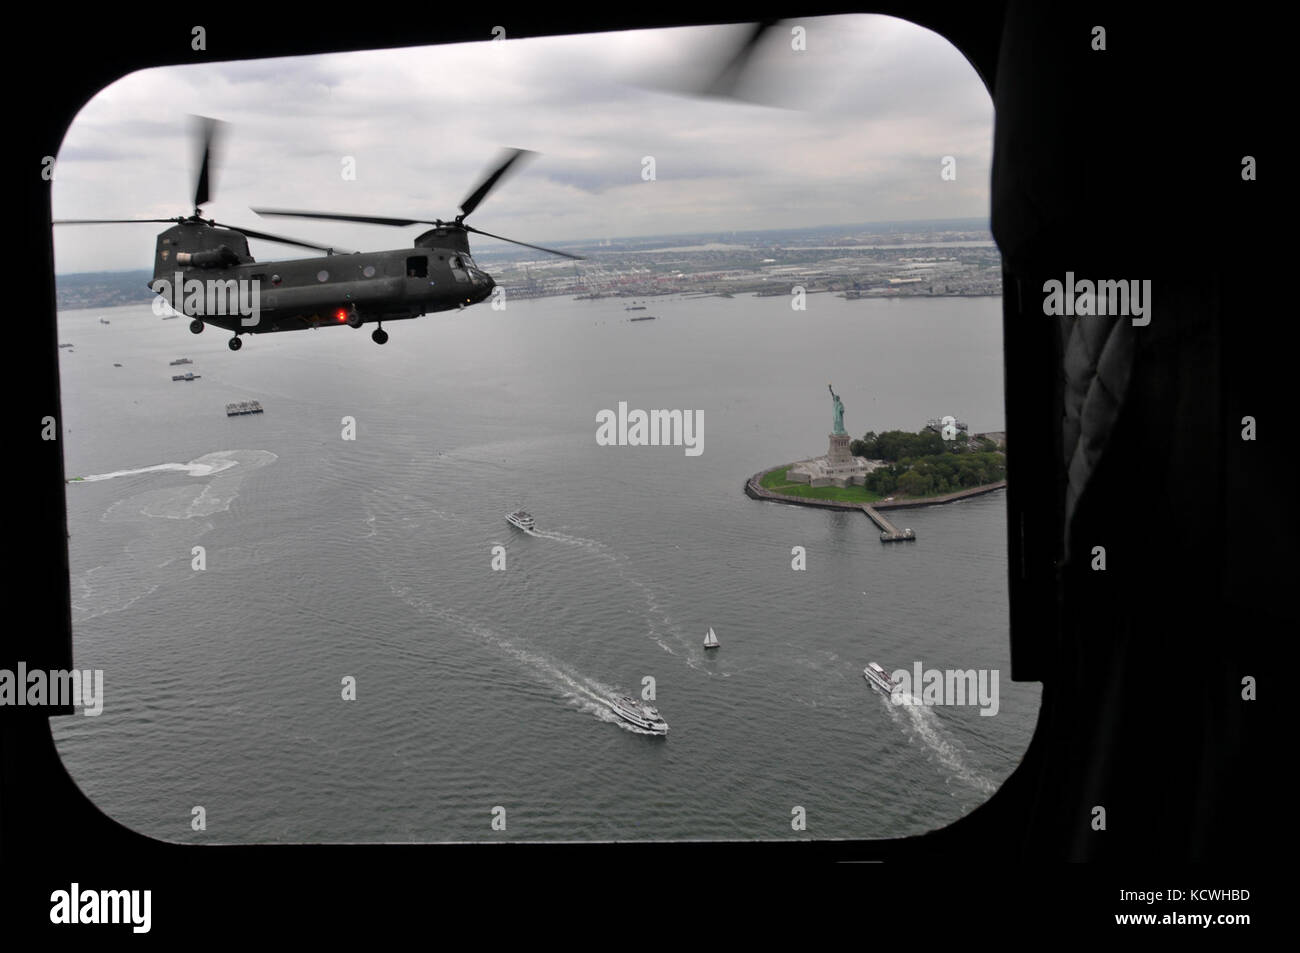 A South Carolina Army National Guard (SCARNG) CH-47D Chinook helicopter flies in proximity of Manhattan, in front - Stock Image